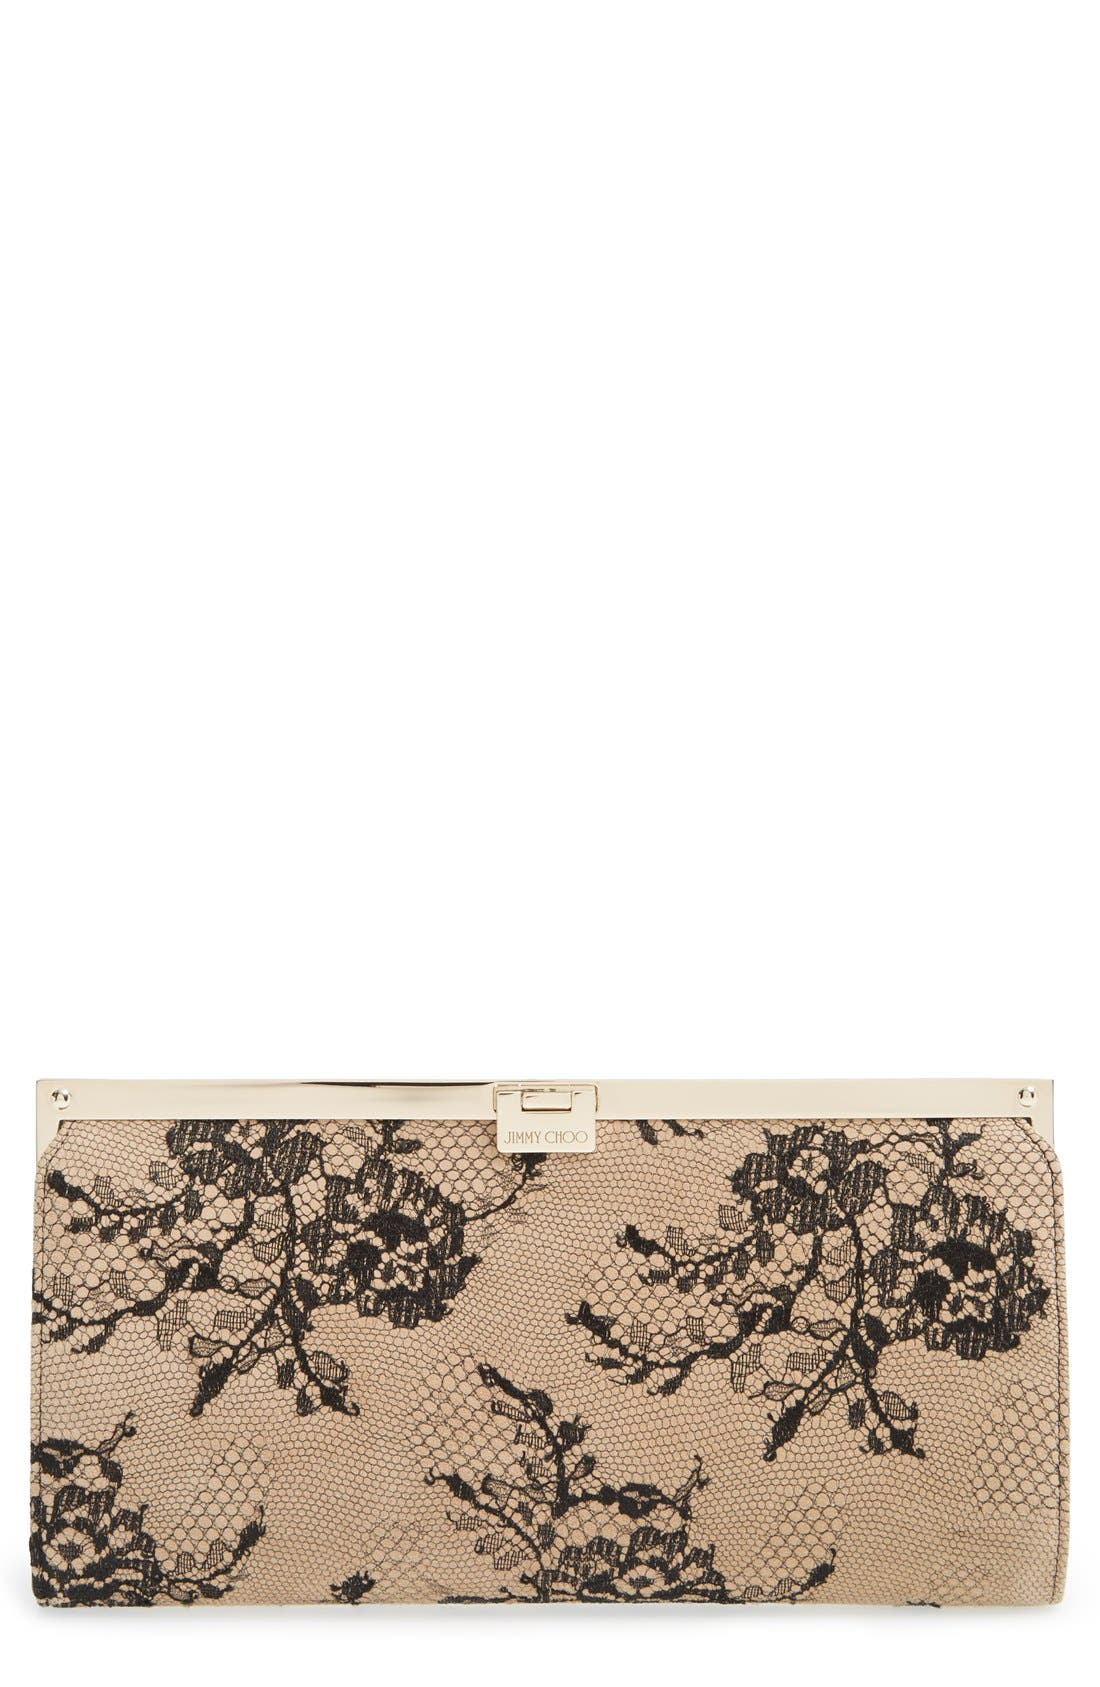 Main Image - Jimmy Choo 'Camille' Lace & Leather Clutch